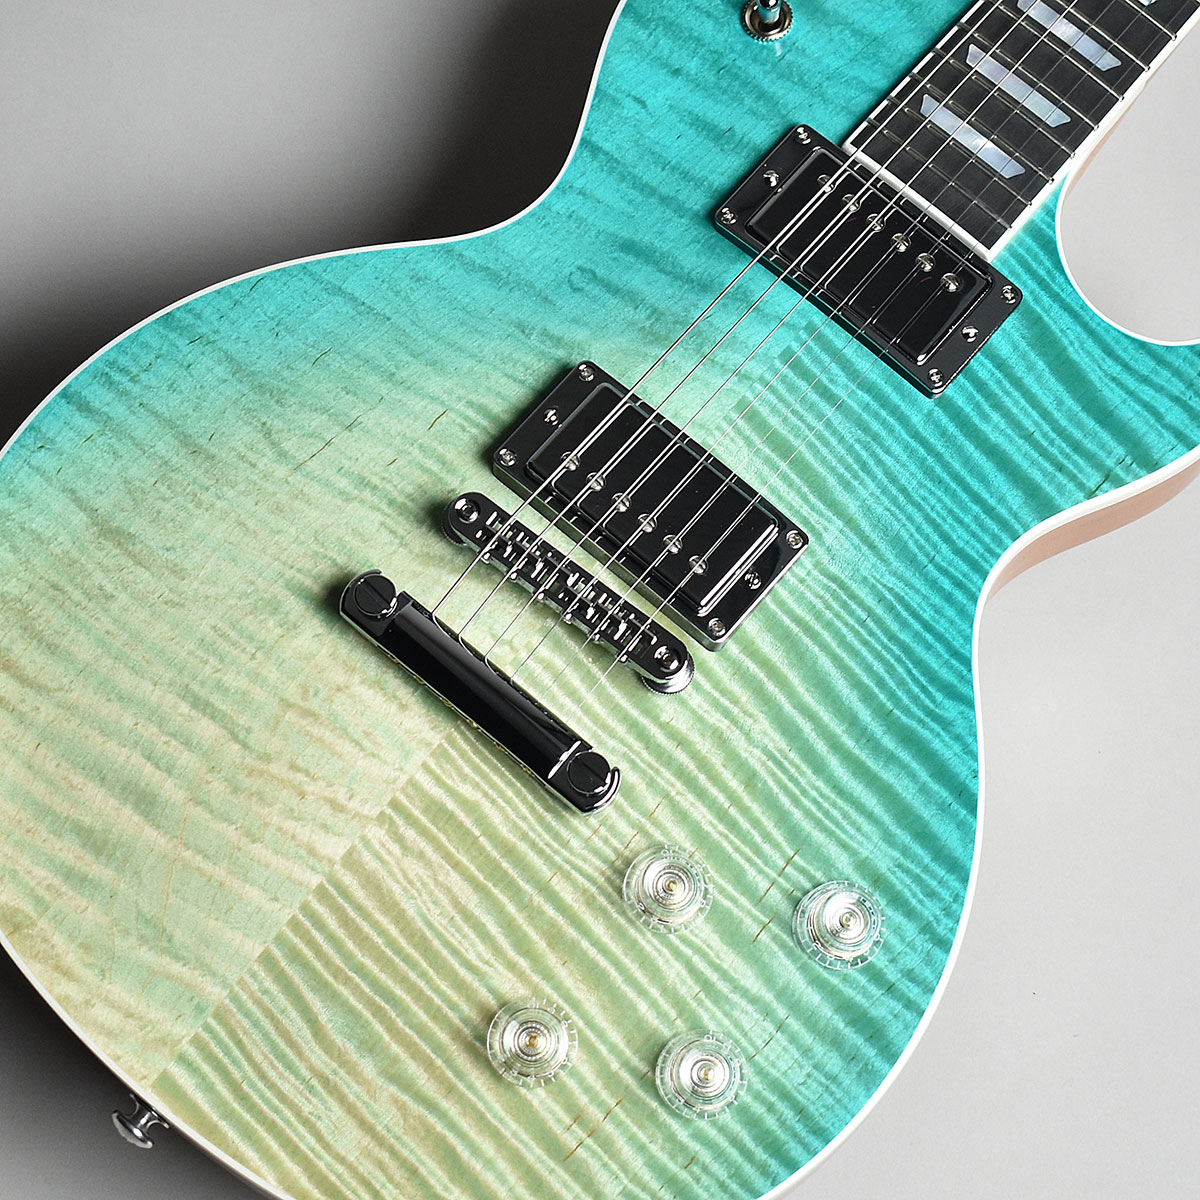 Gibson Les Paul High Performance 2019 Seaform Fade S/N:190014285 【ギブソン HP 2019】【未展示品】